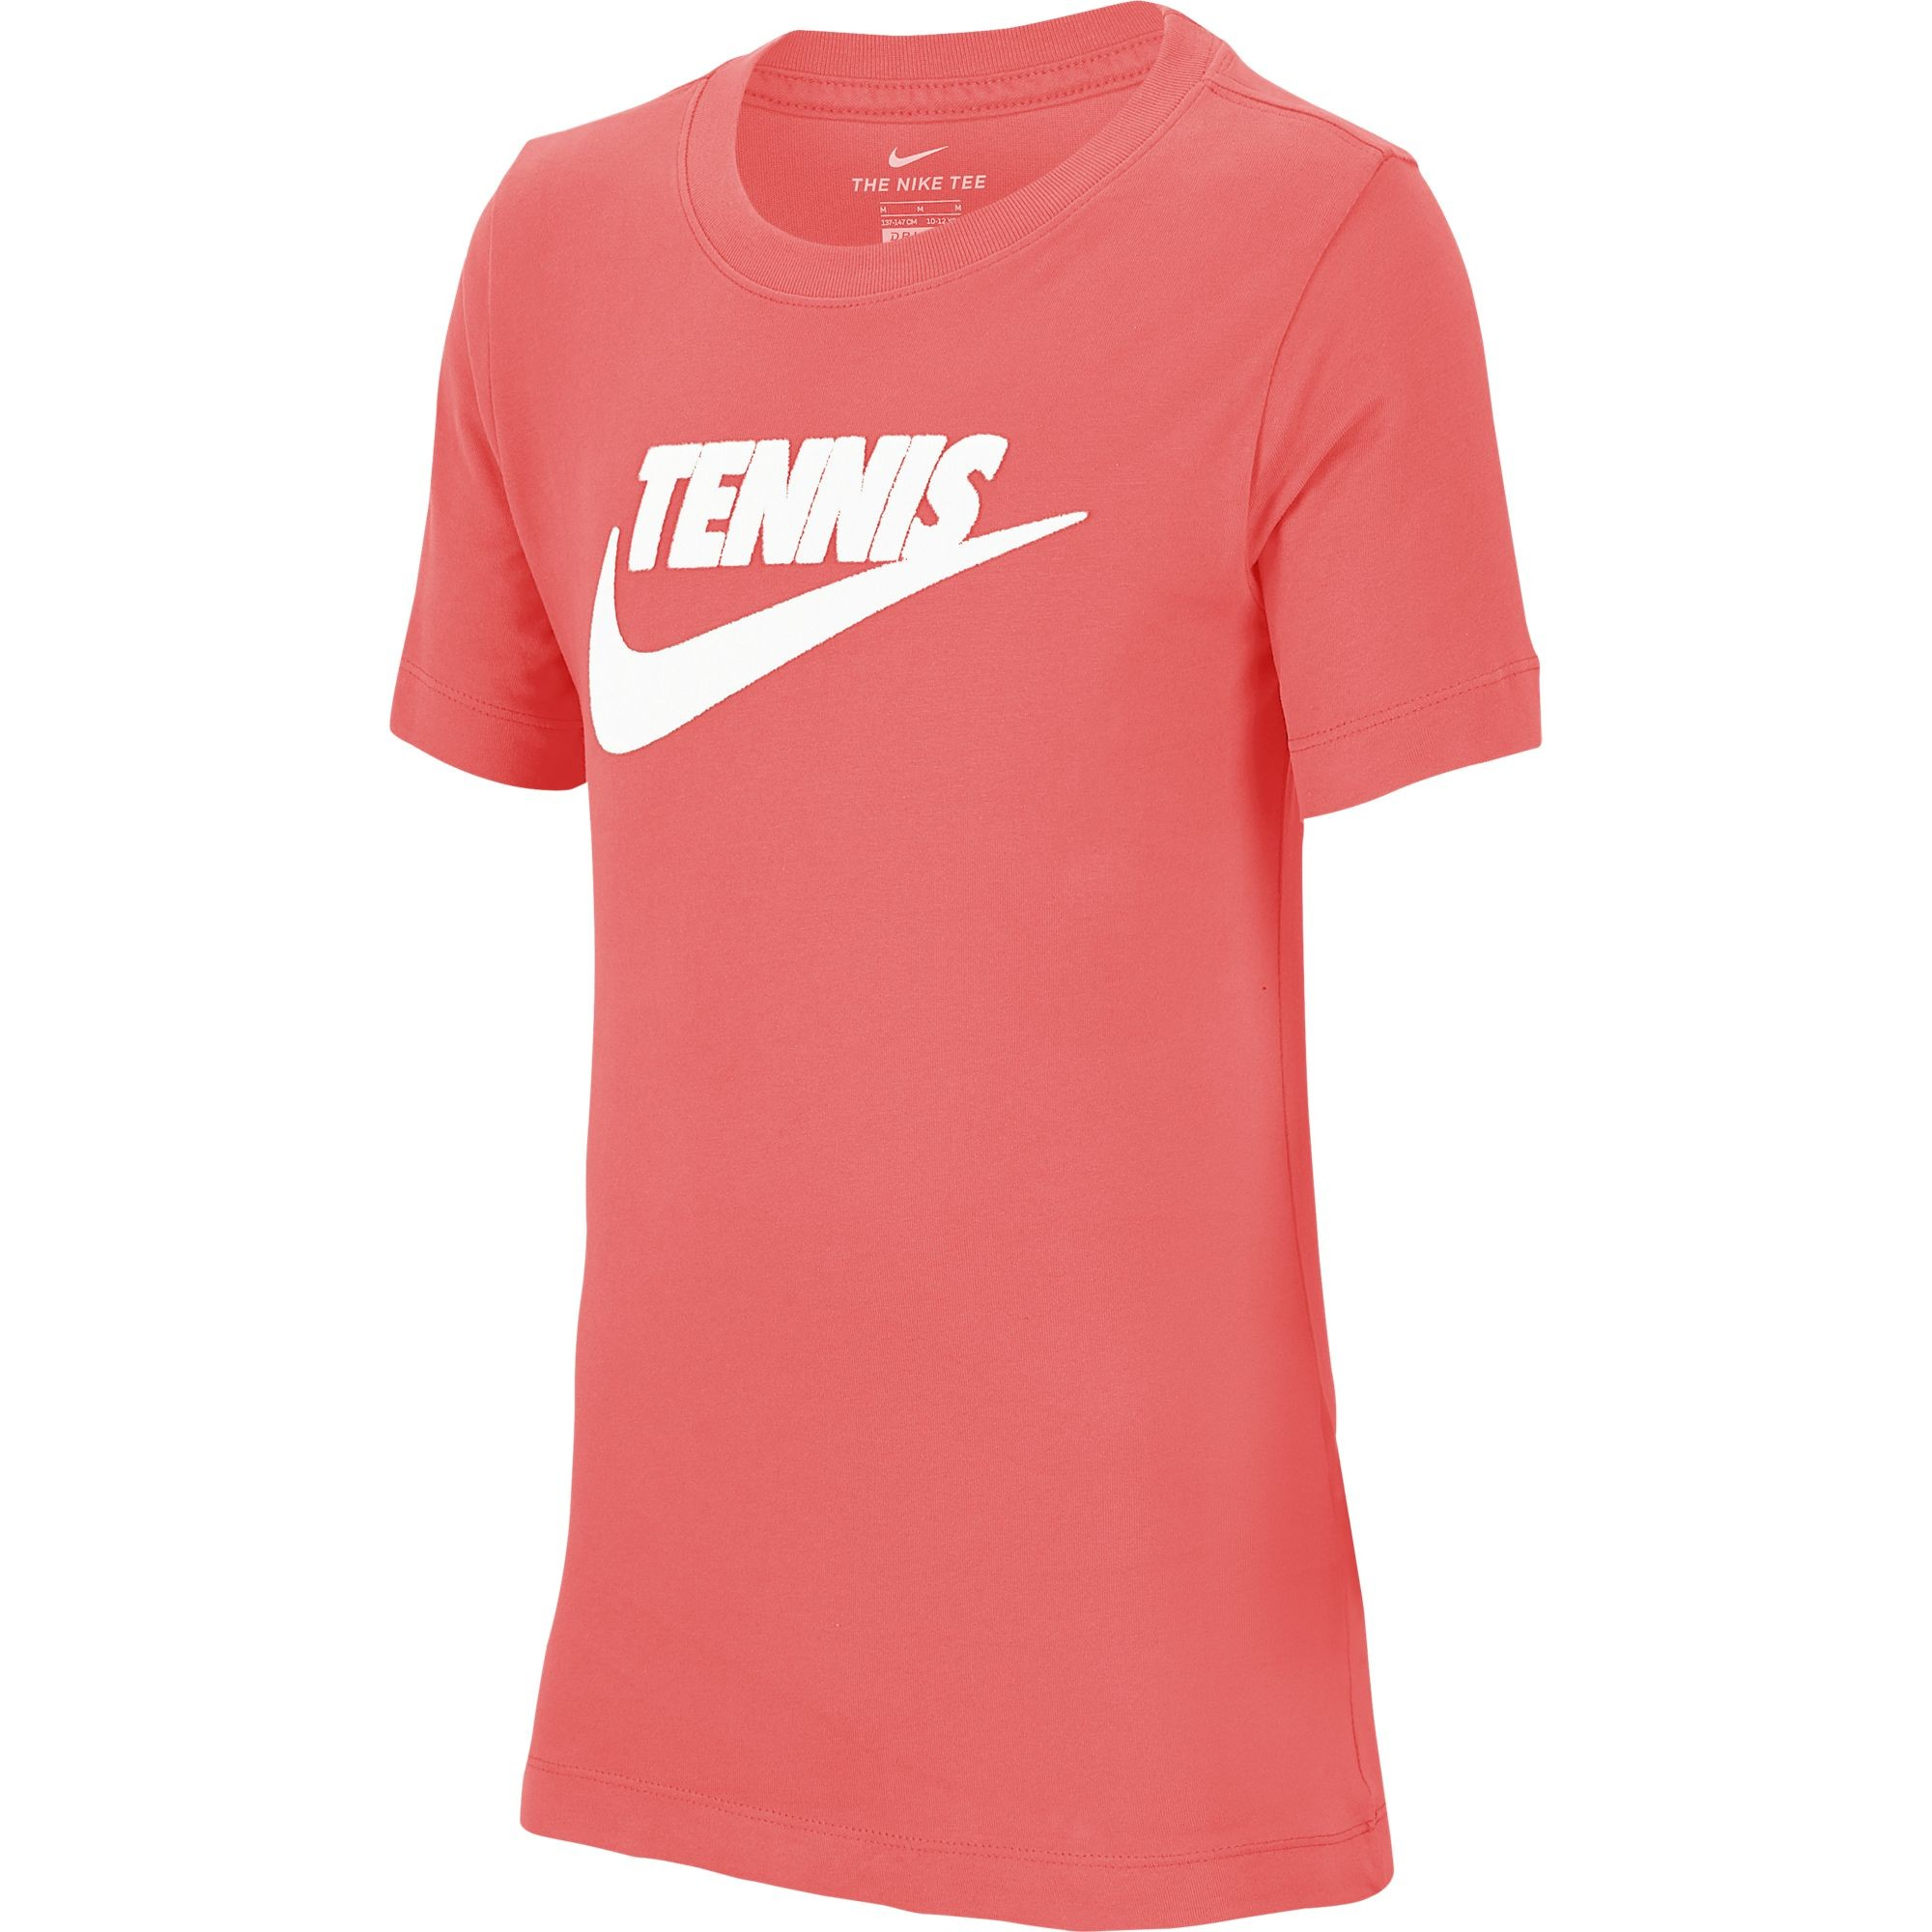 Nike Court Ss T shirt Tennis Enfant Ete 2020 T shirt De Tennis Enfant T shirt De Tennis Enfant